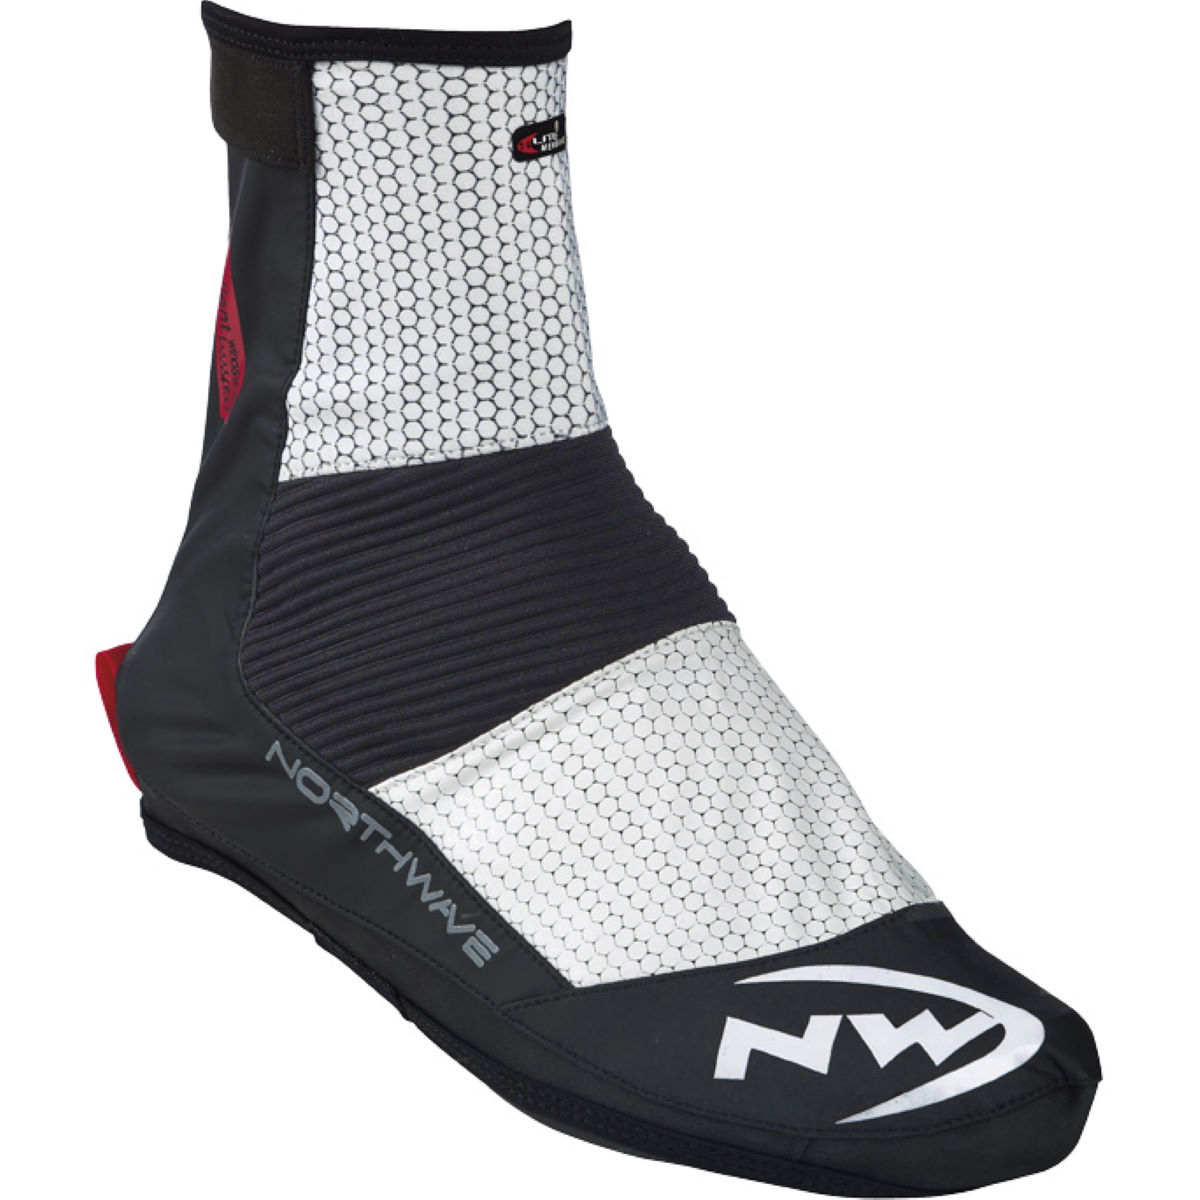 Northwave X-Cellent-Technical Waterproof High Shoecover